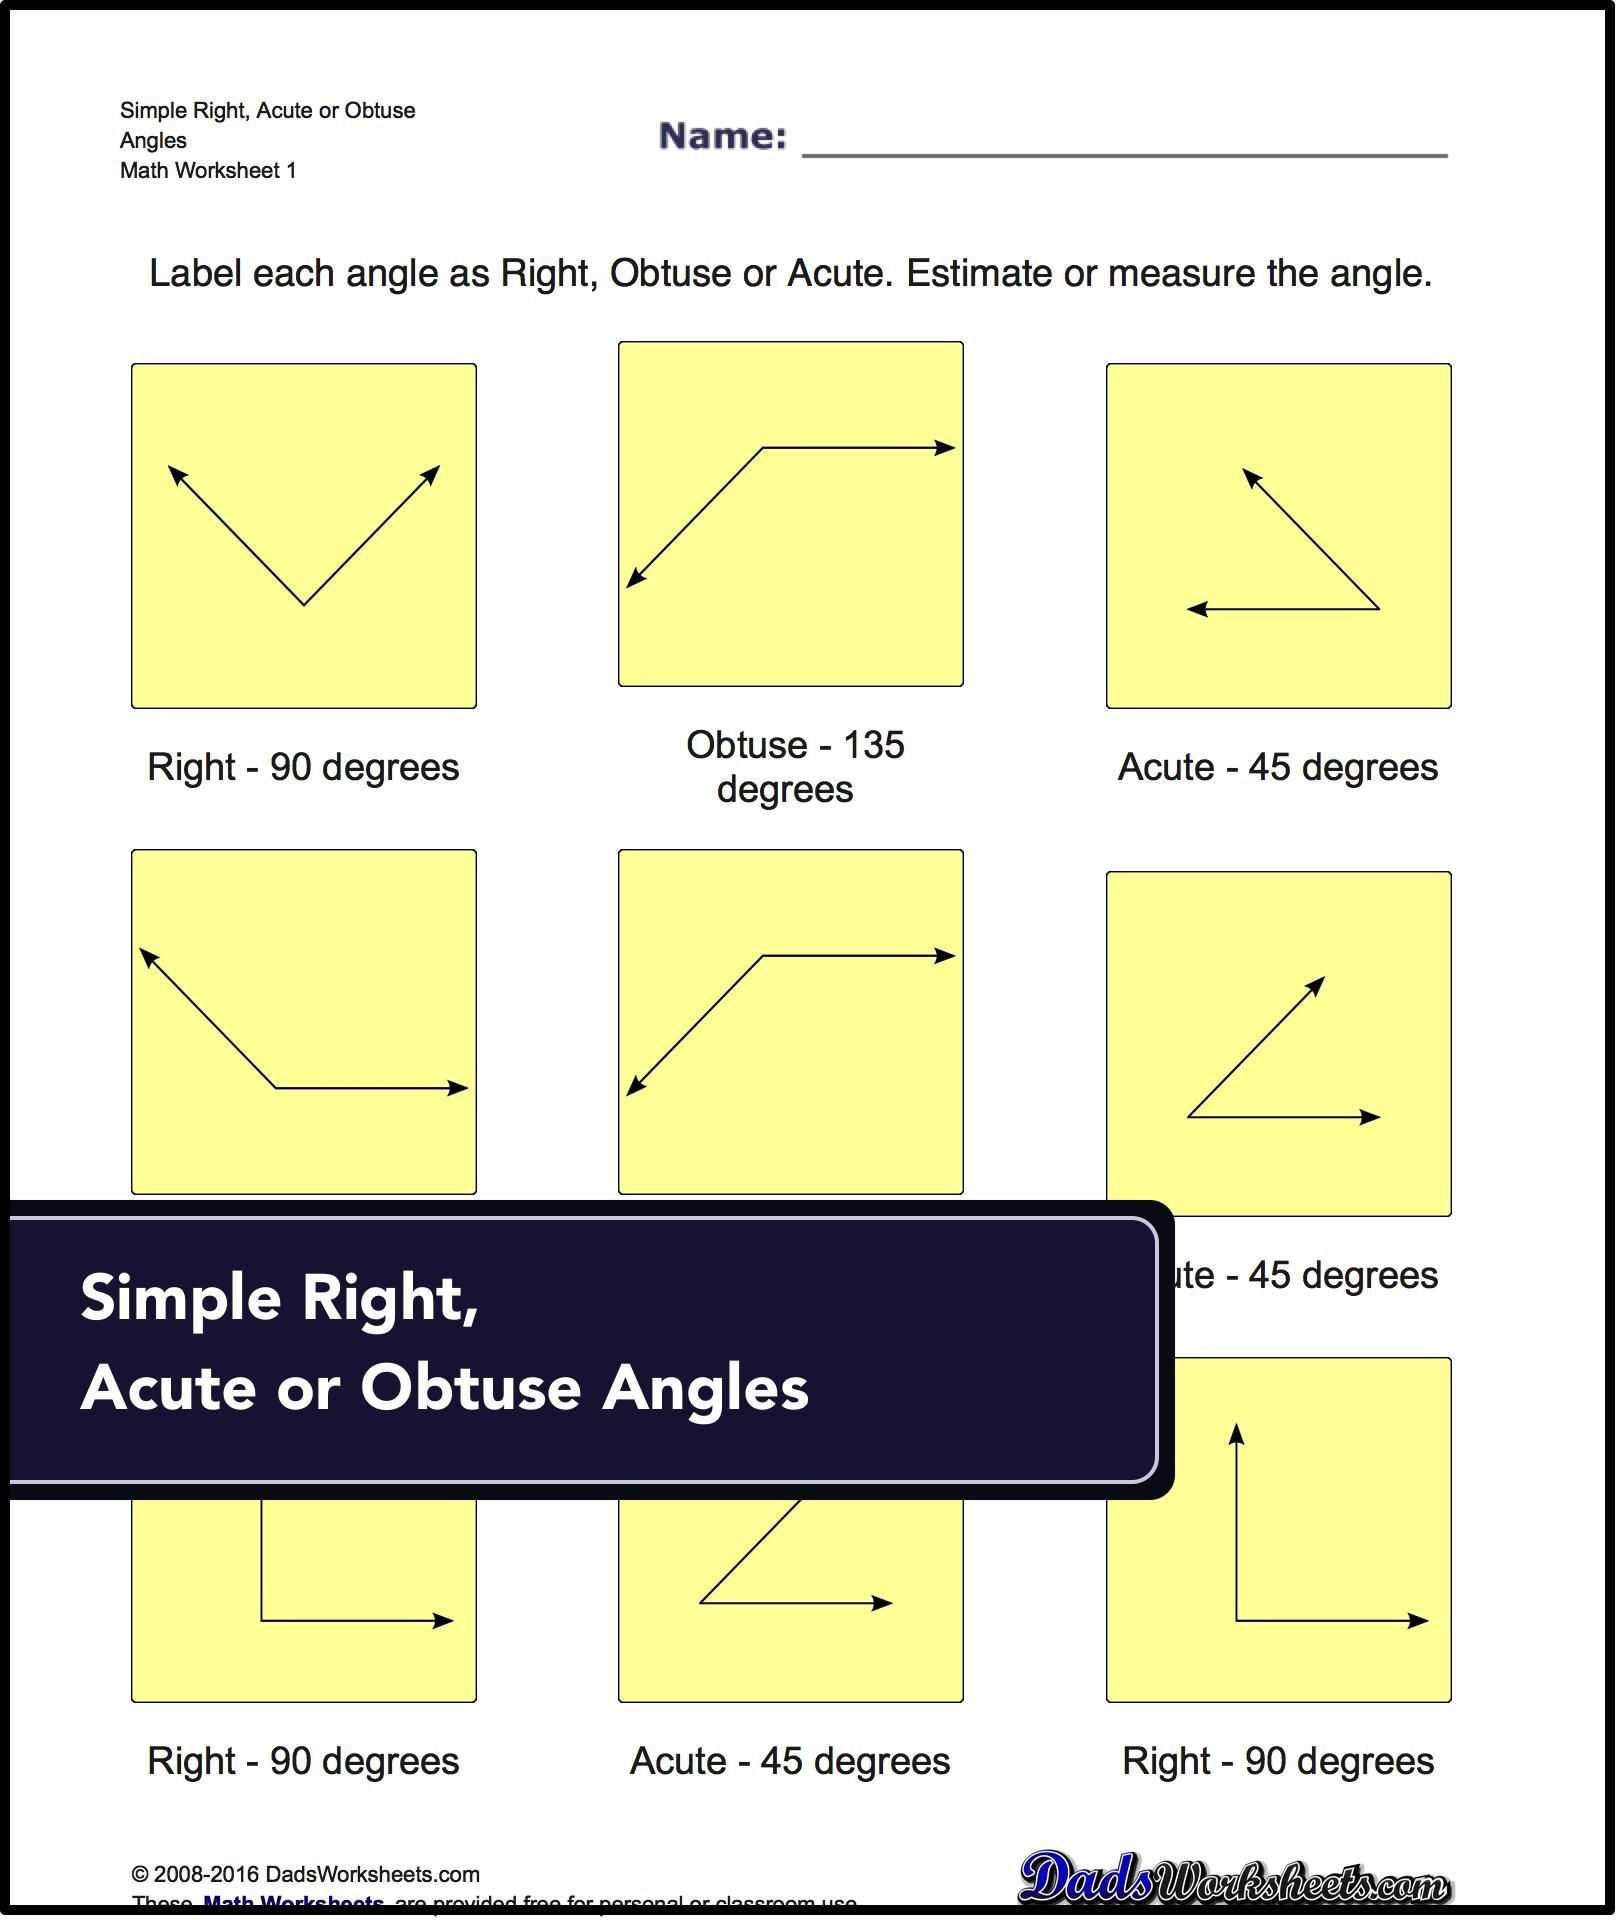 Basic Geometry Worksheets Topics covered: angular measurement,  complementary and suplementary angles, measurement of